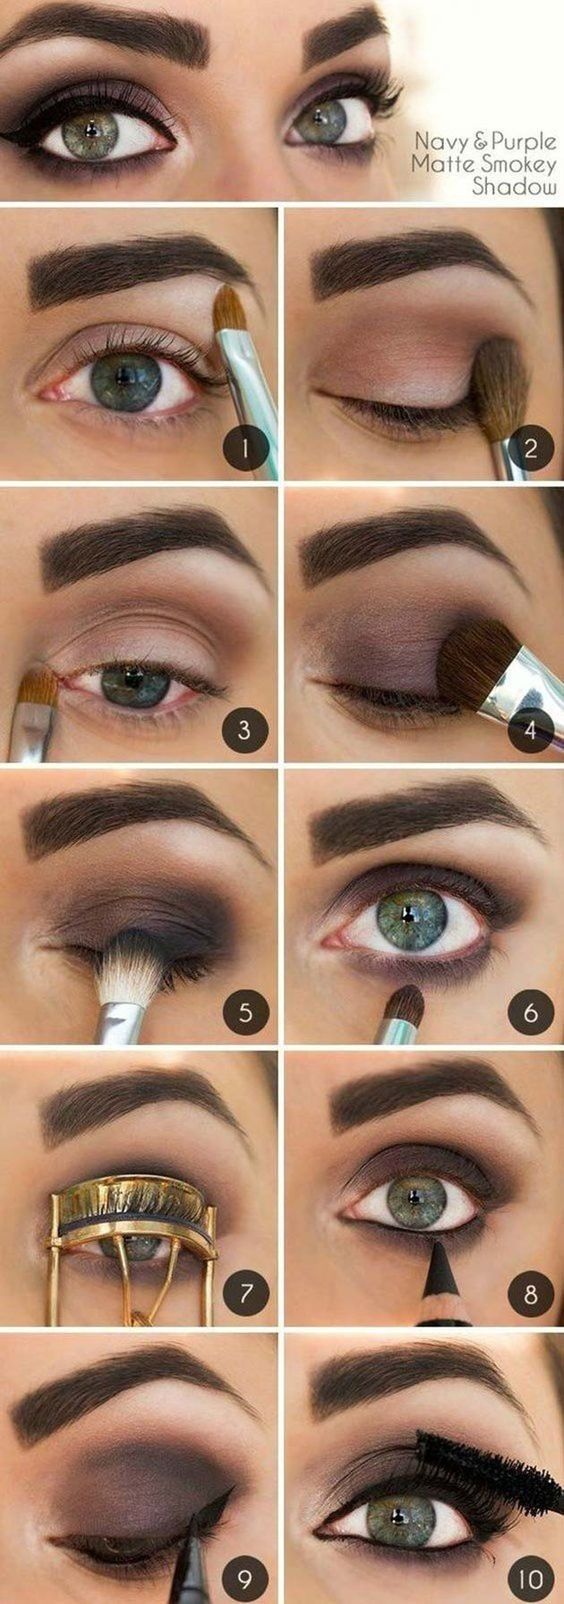 10 Step By Step Makeup Tutorials For Green Eyes - Her Style Code inside How To Do Makeup For Green Eyes